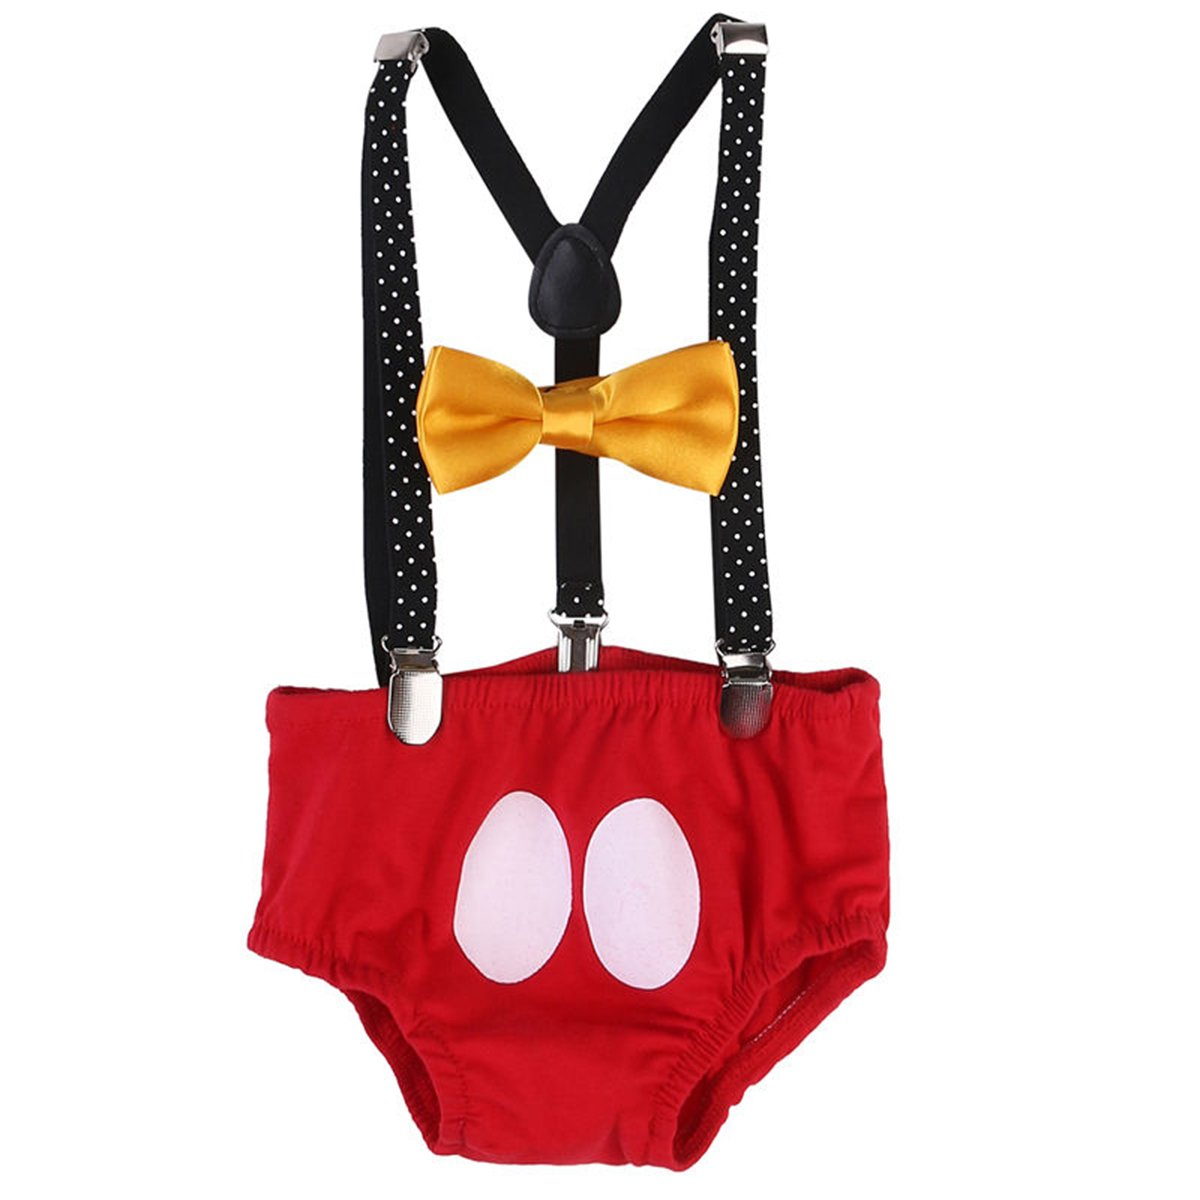 Baby Boys Adjustable Y Back Clip Suspenders Outfit First Birthday Bloomers Bowtie set Polka Dots + Black + Red One Size